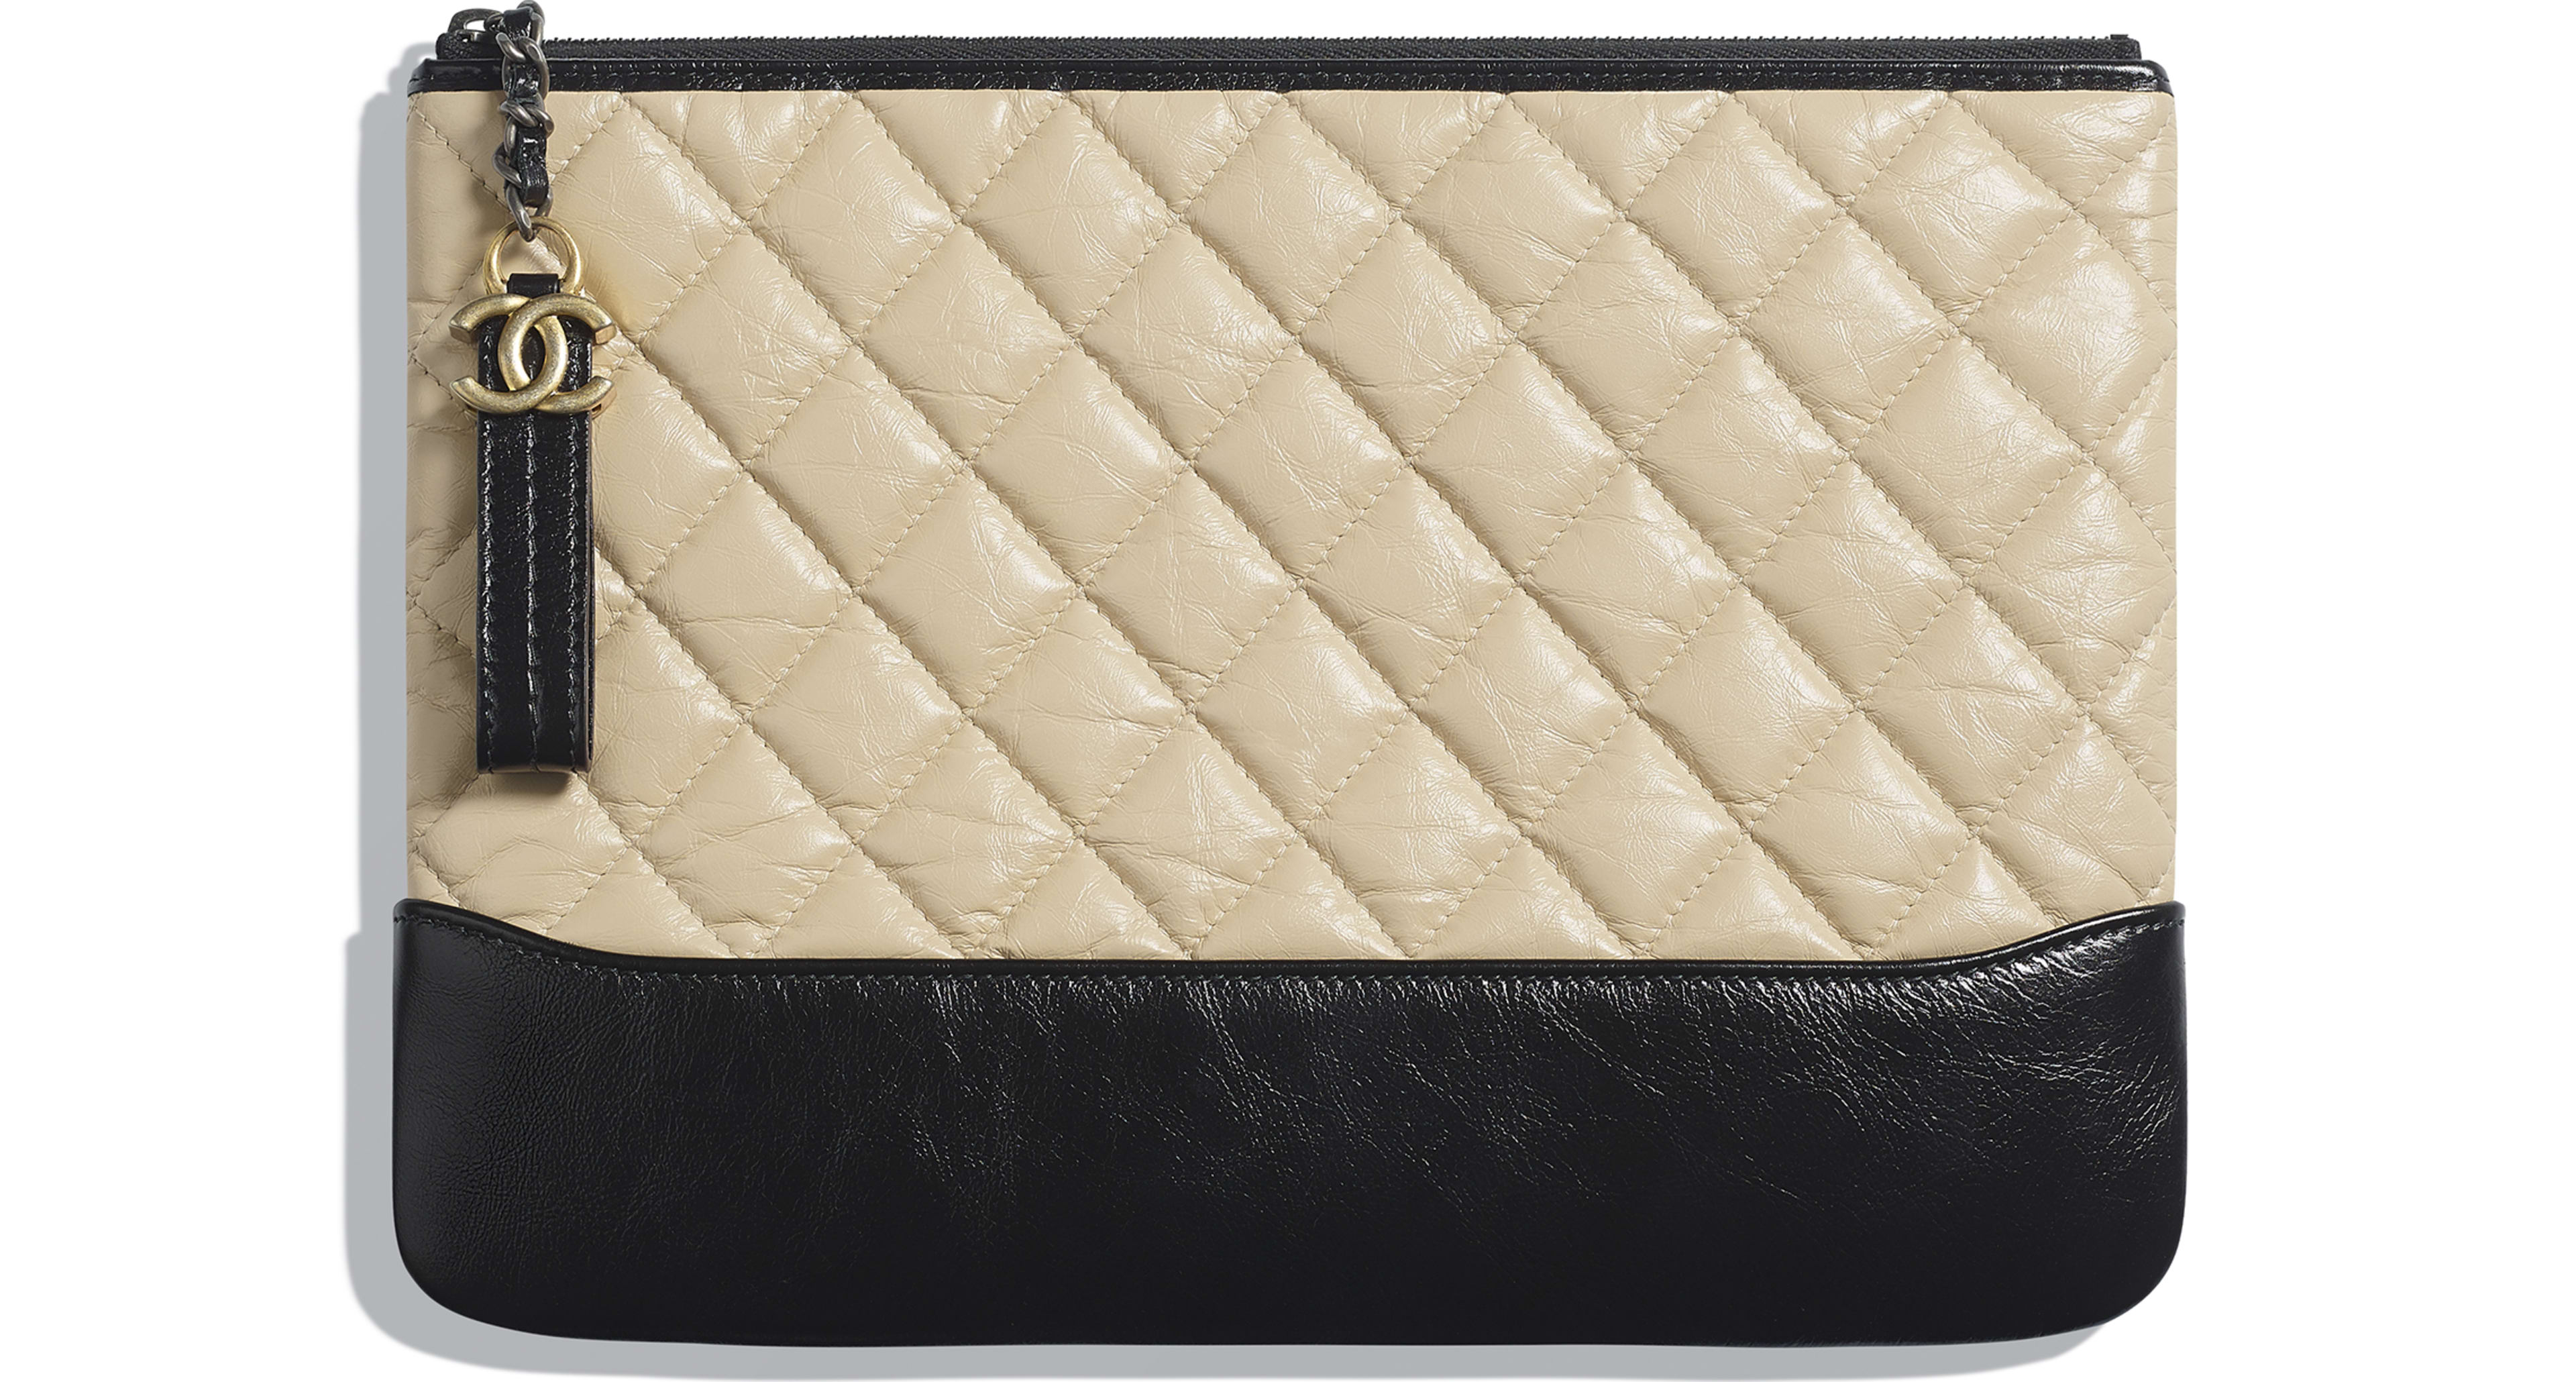 Aged Calfskin, Smooth Calfskin, Silver-Tone & Gold-Tone Metal Beige & Black